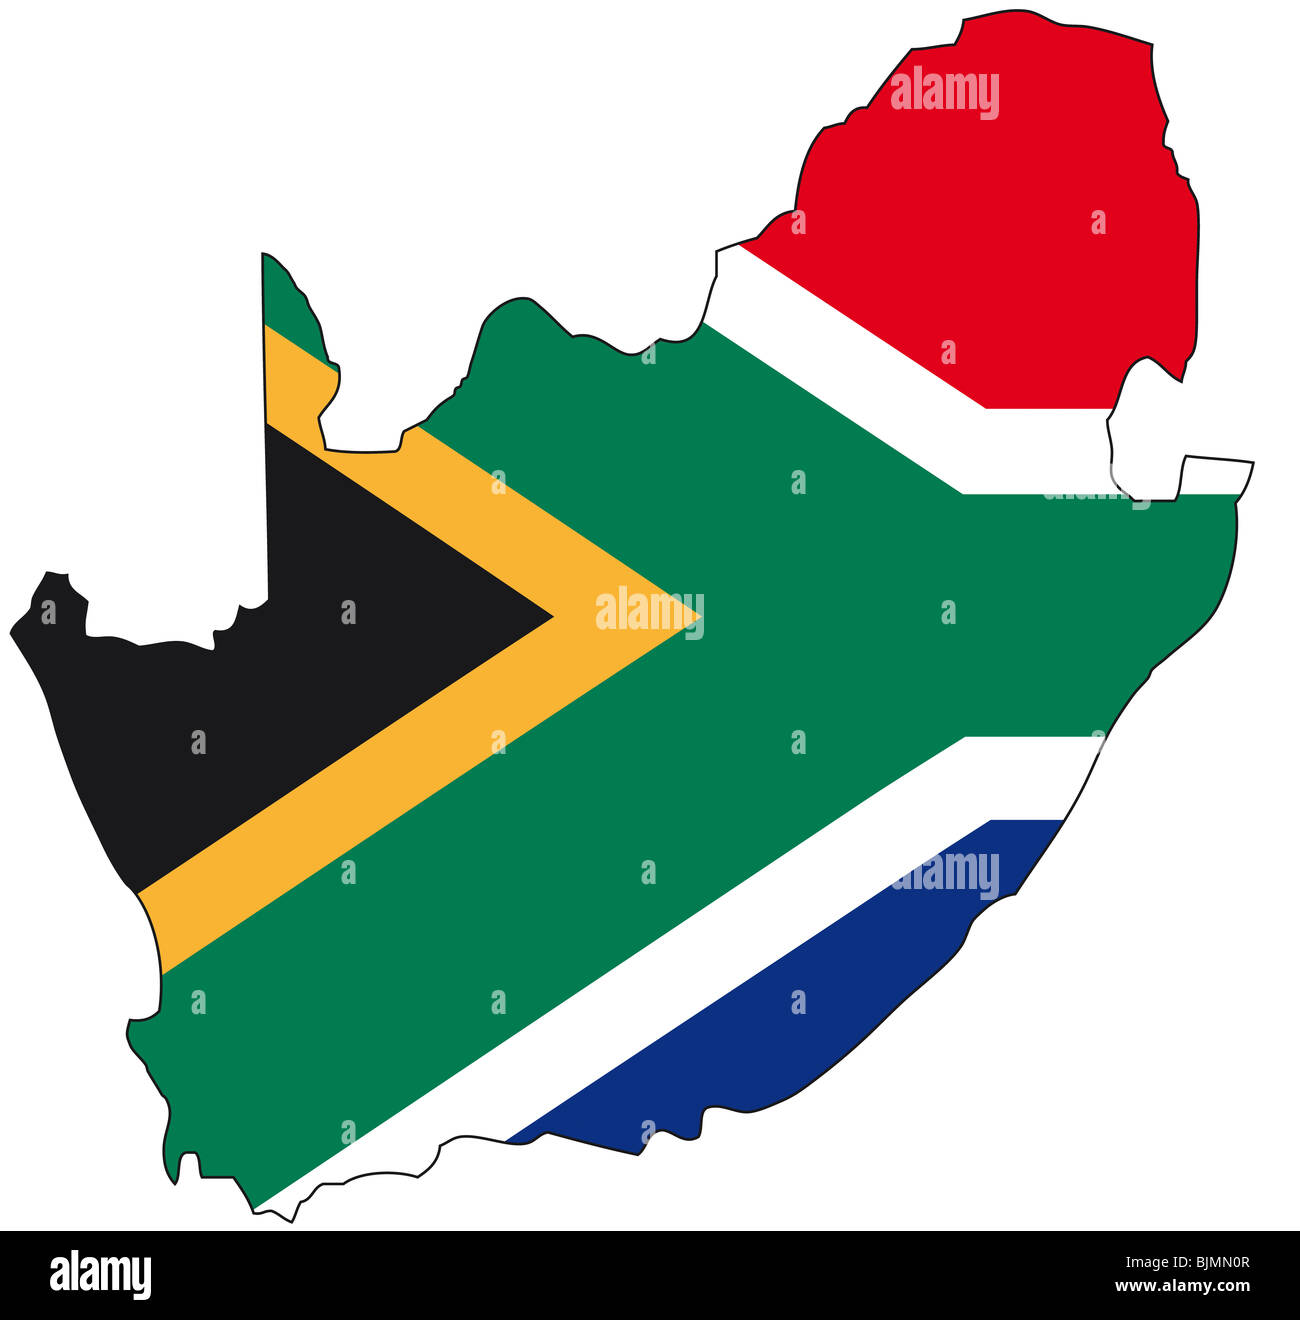 South Africa flag outline Stock Photo Royalty Free Image